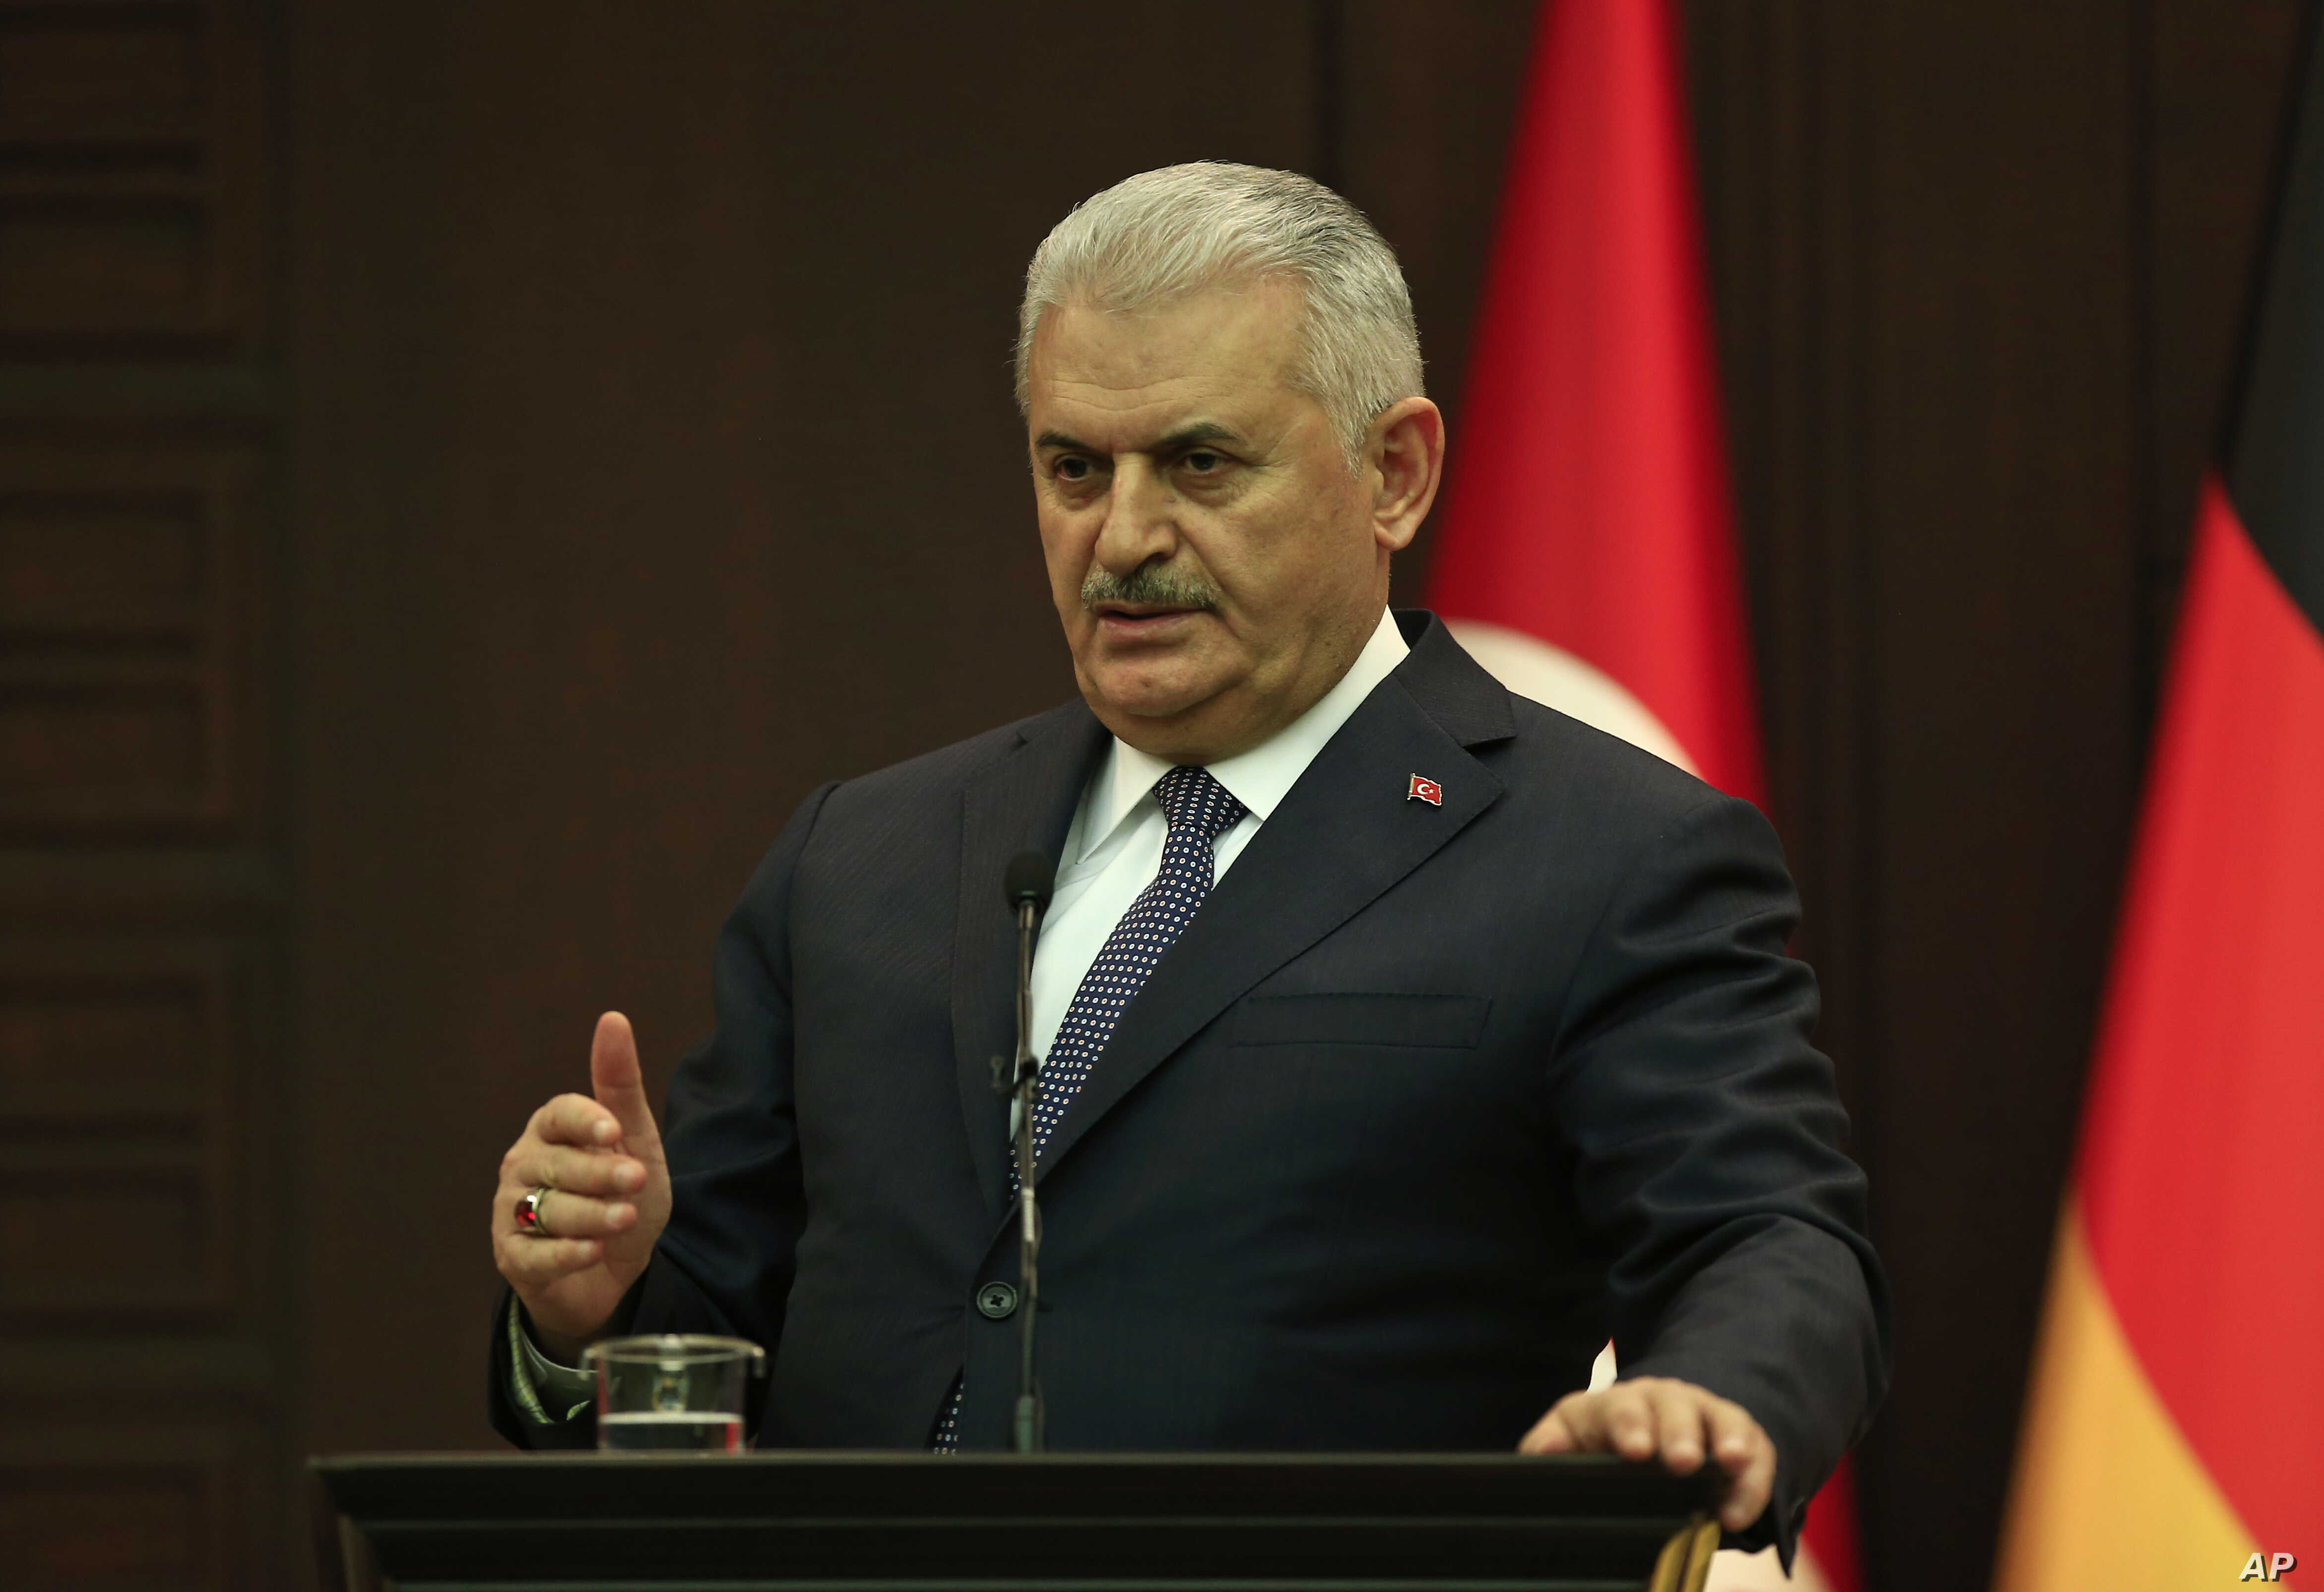 Turkey's Prime Minister Binali Yildirim speaks during a press conference with German Chancellor Angela Merkel after their meeting in Ankara, Feb. 2, 2017.